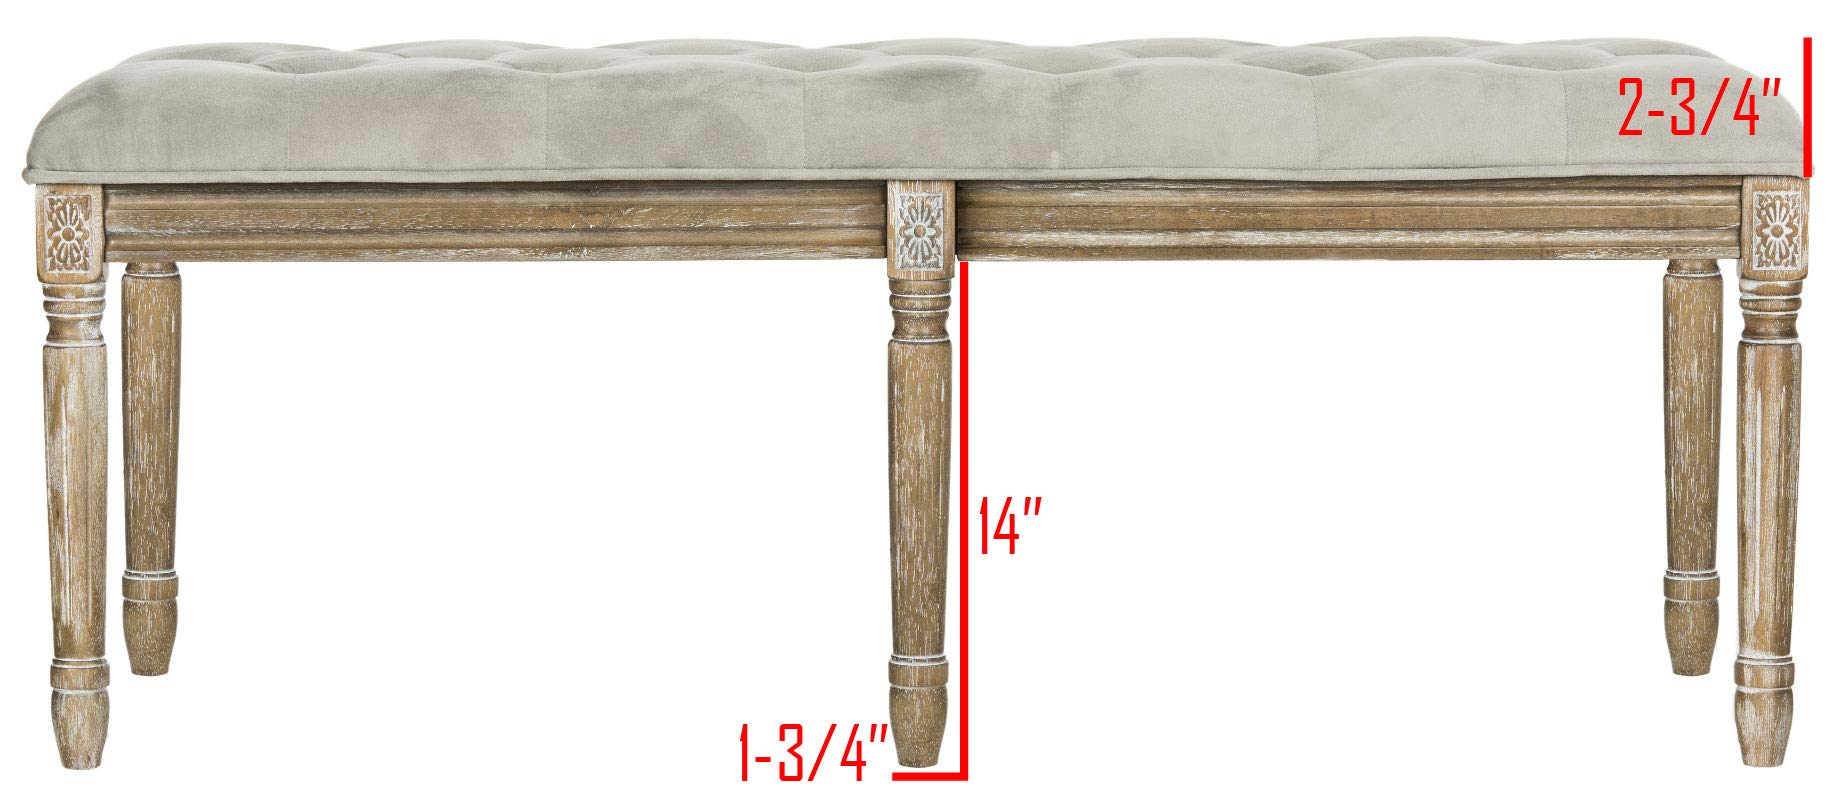 Safavieh Home Collection Rocha French Brasserie Tufted Grey and Rustic Oak 19-inch Wood Bench by Safavieh (Image #4)